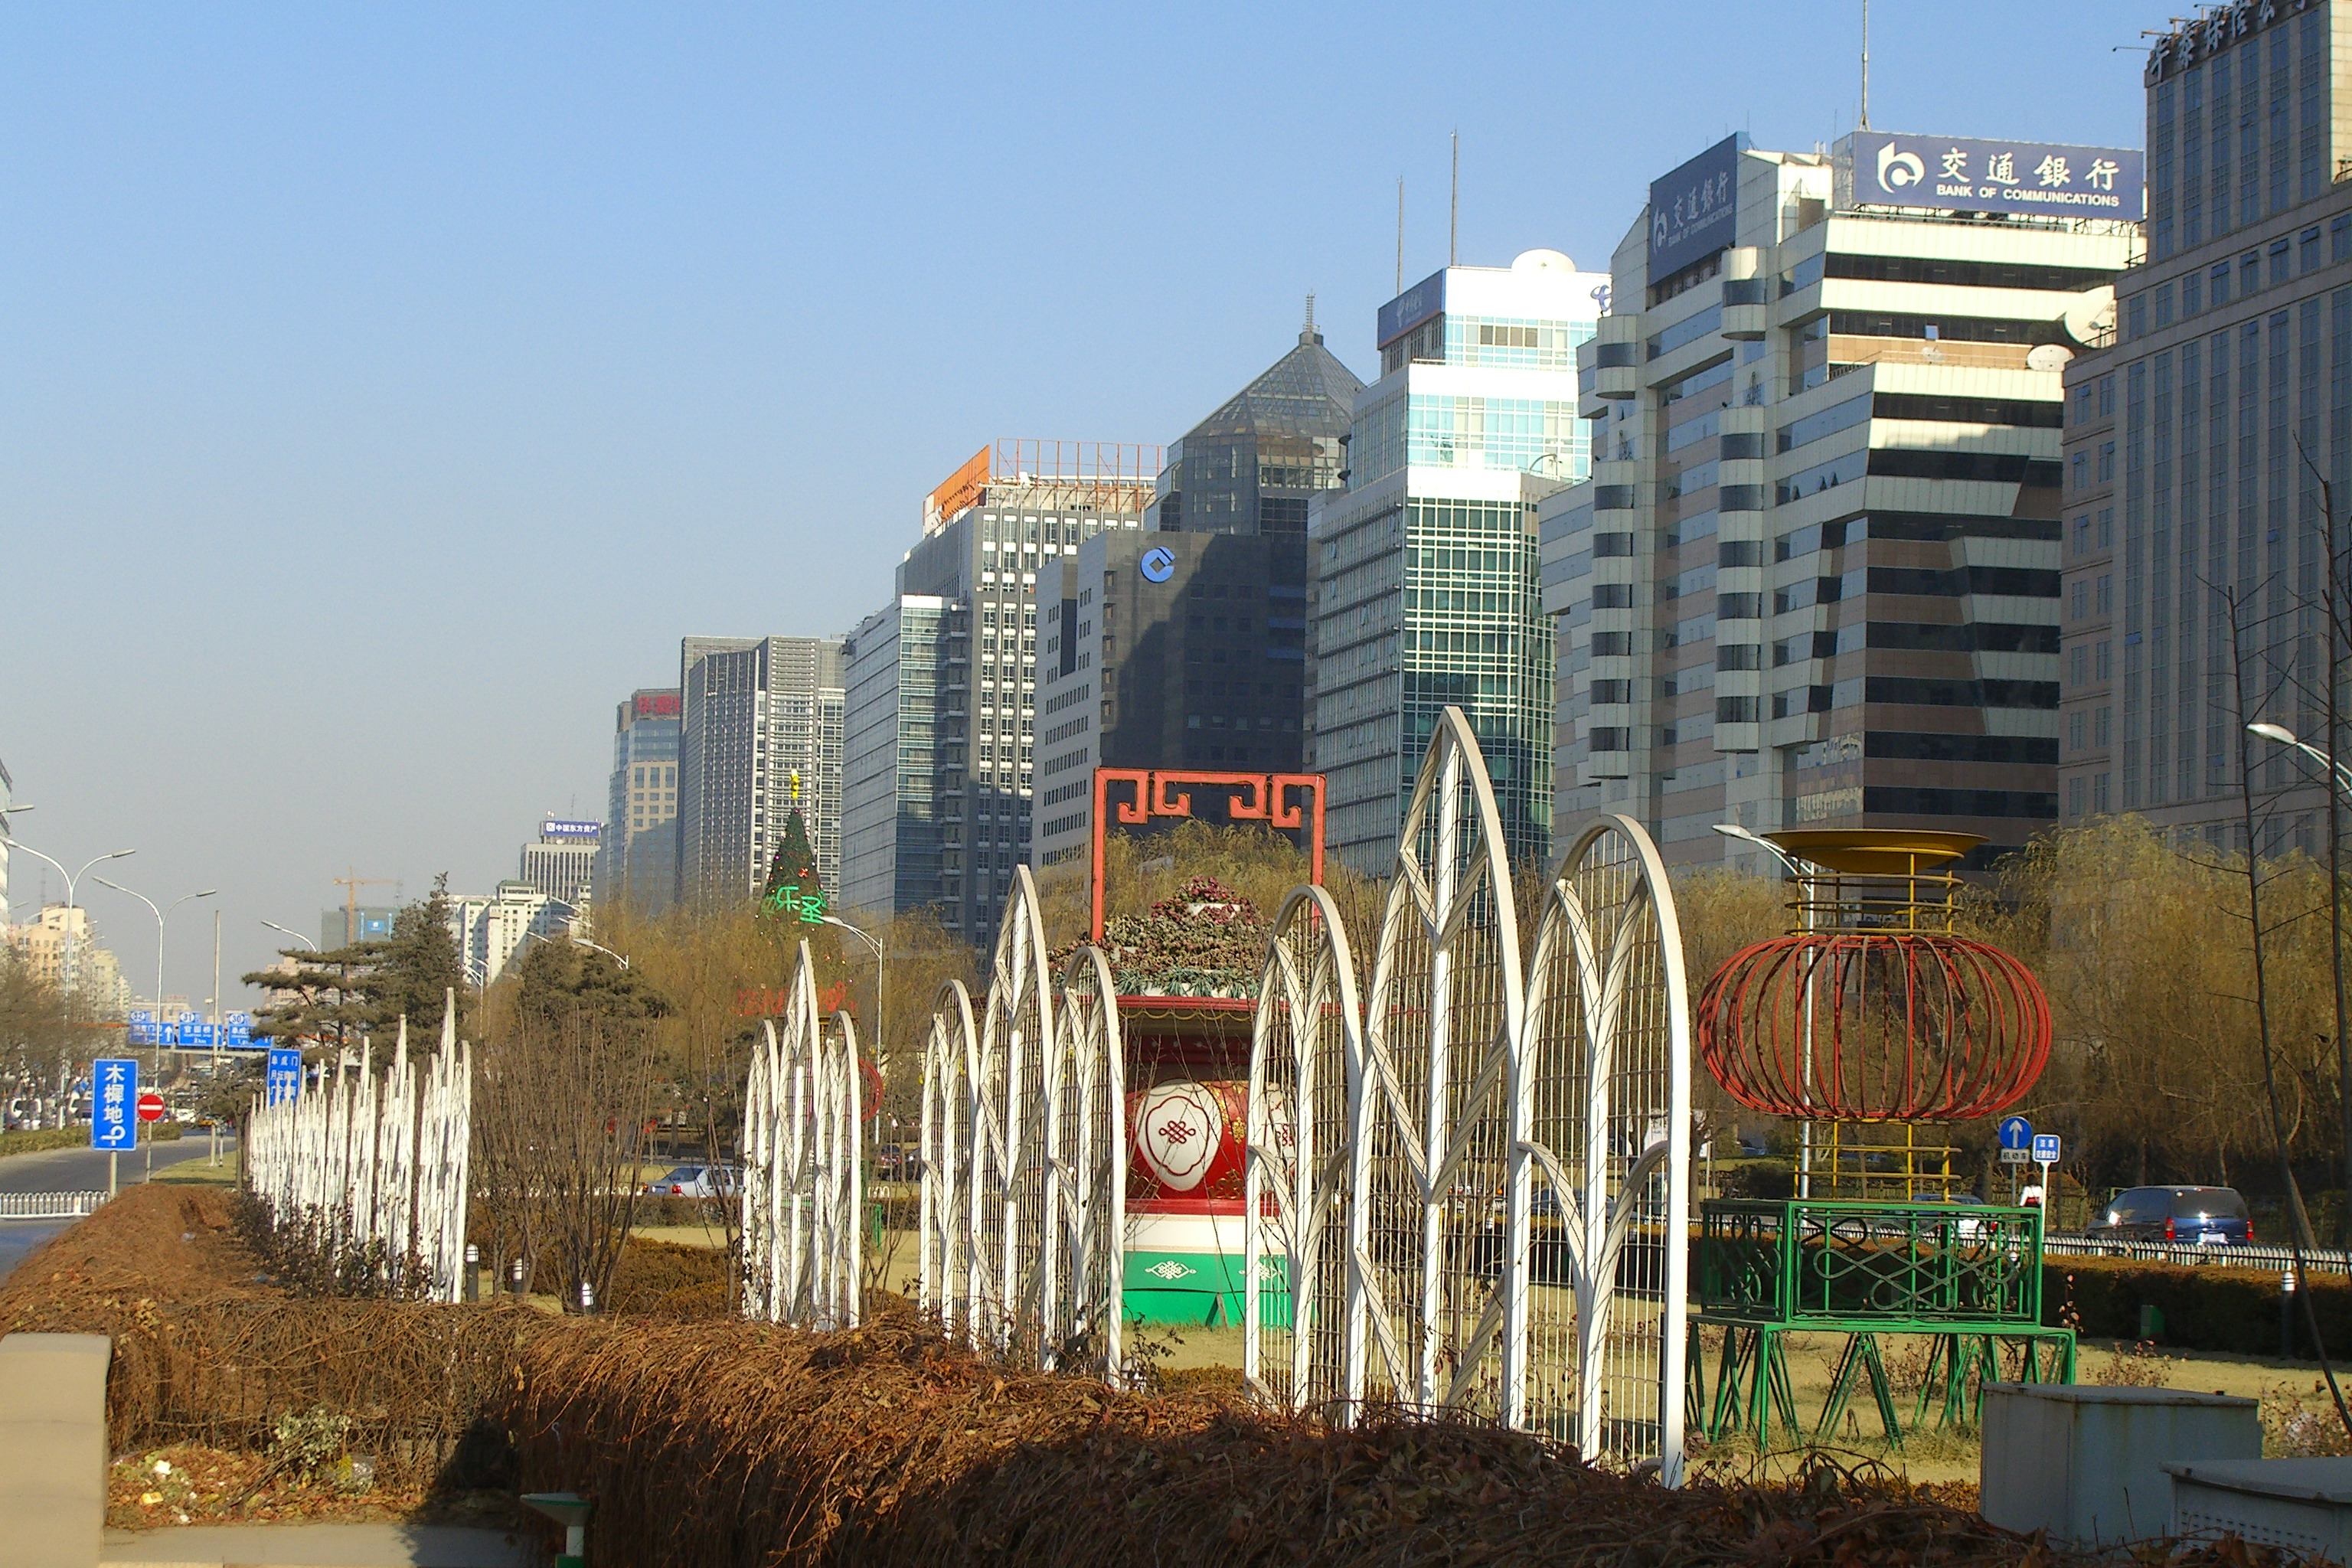 Beijing Financial Street - home to the AIIB headquarters (image: Wikimedia Commons)